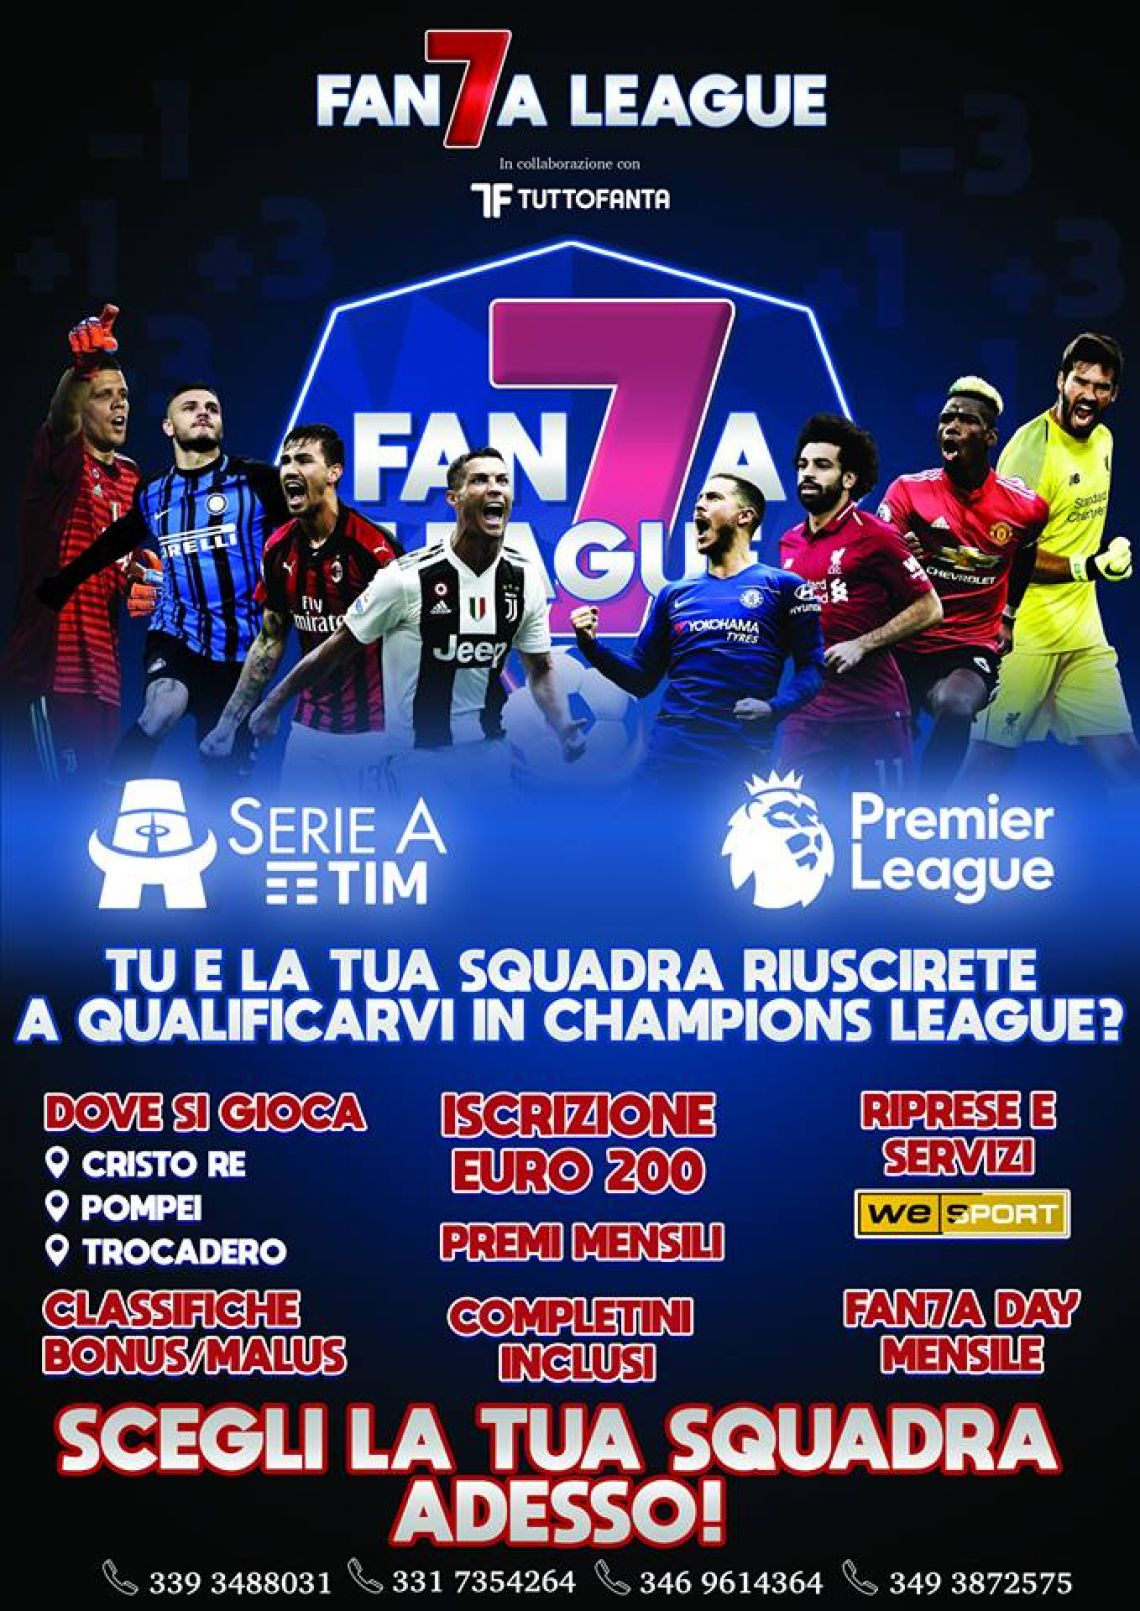 Serie A - Fan7a League 2019